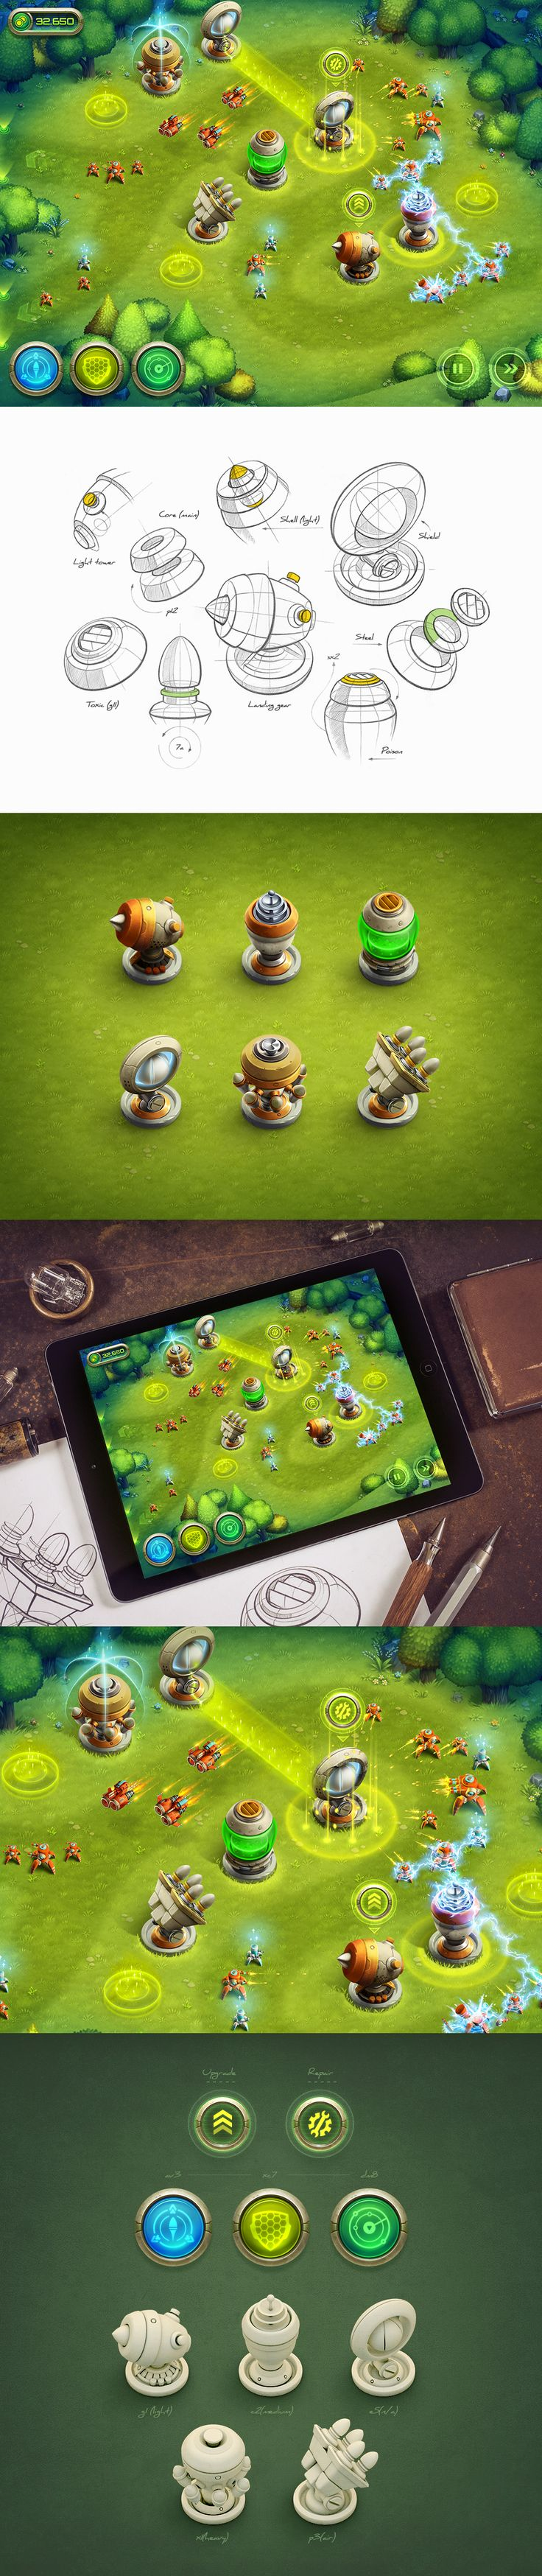 Dribbble - tower_defence_ios_game.jpg by Mike | Creative Mints